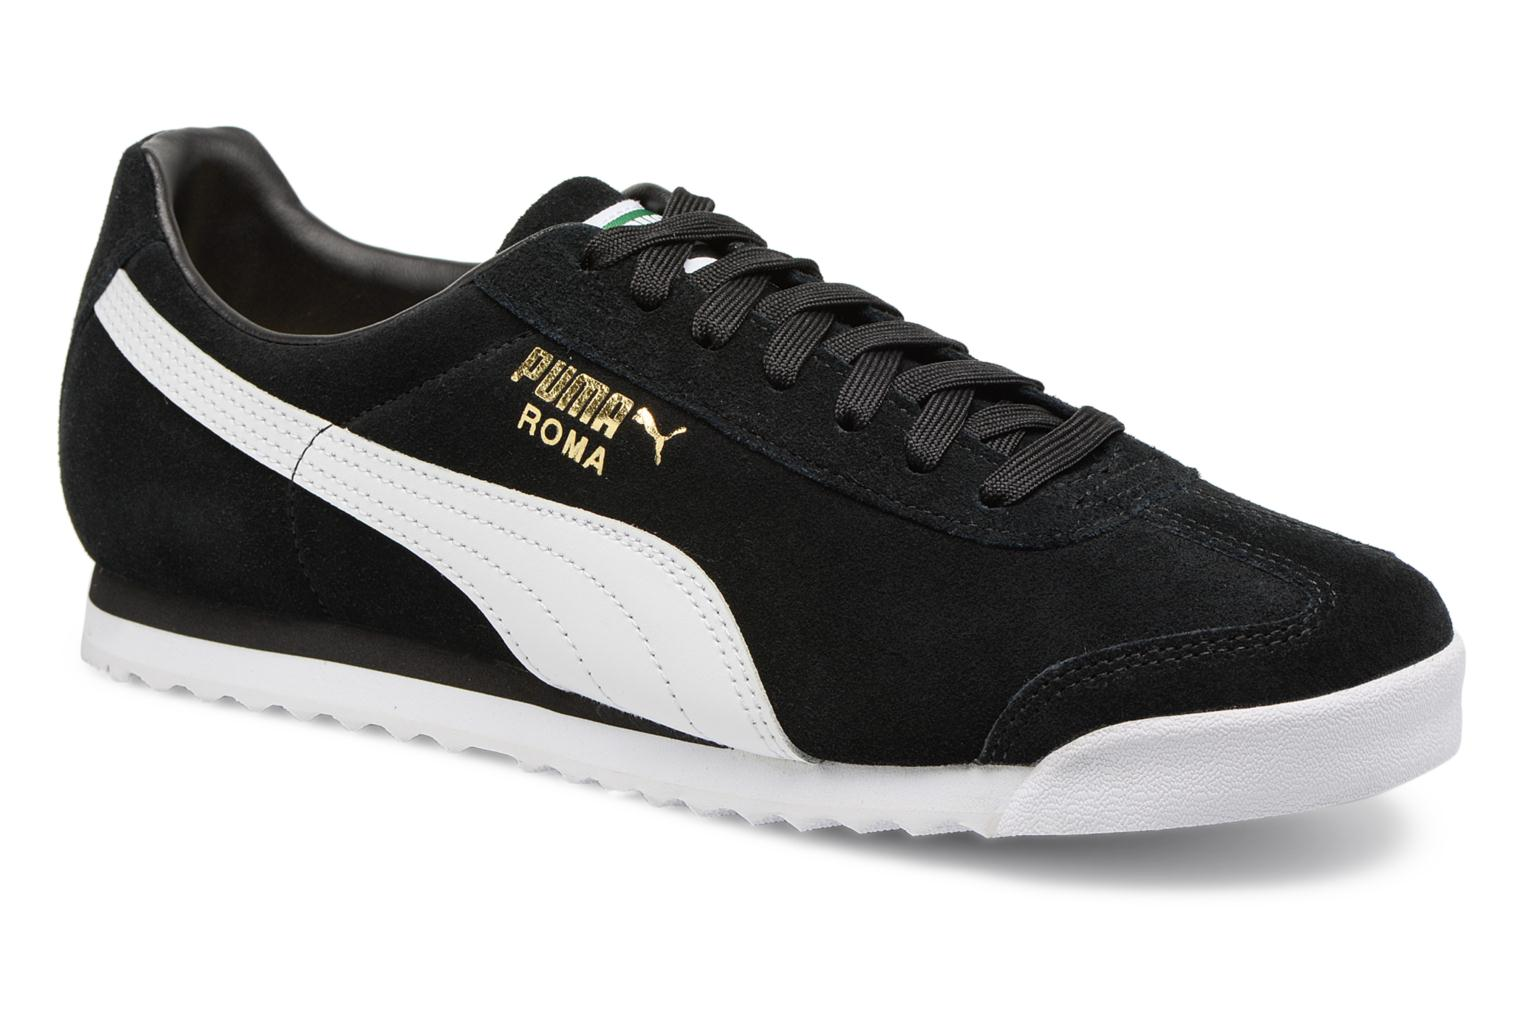 Roma Suede by Puma